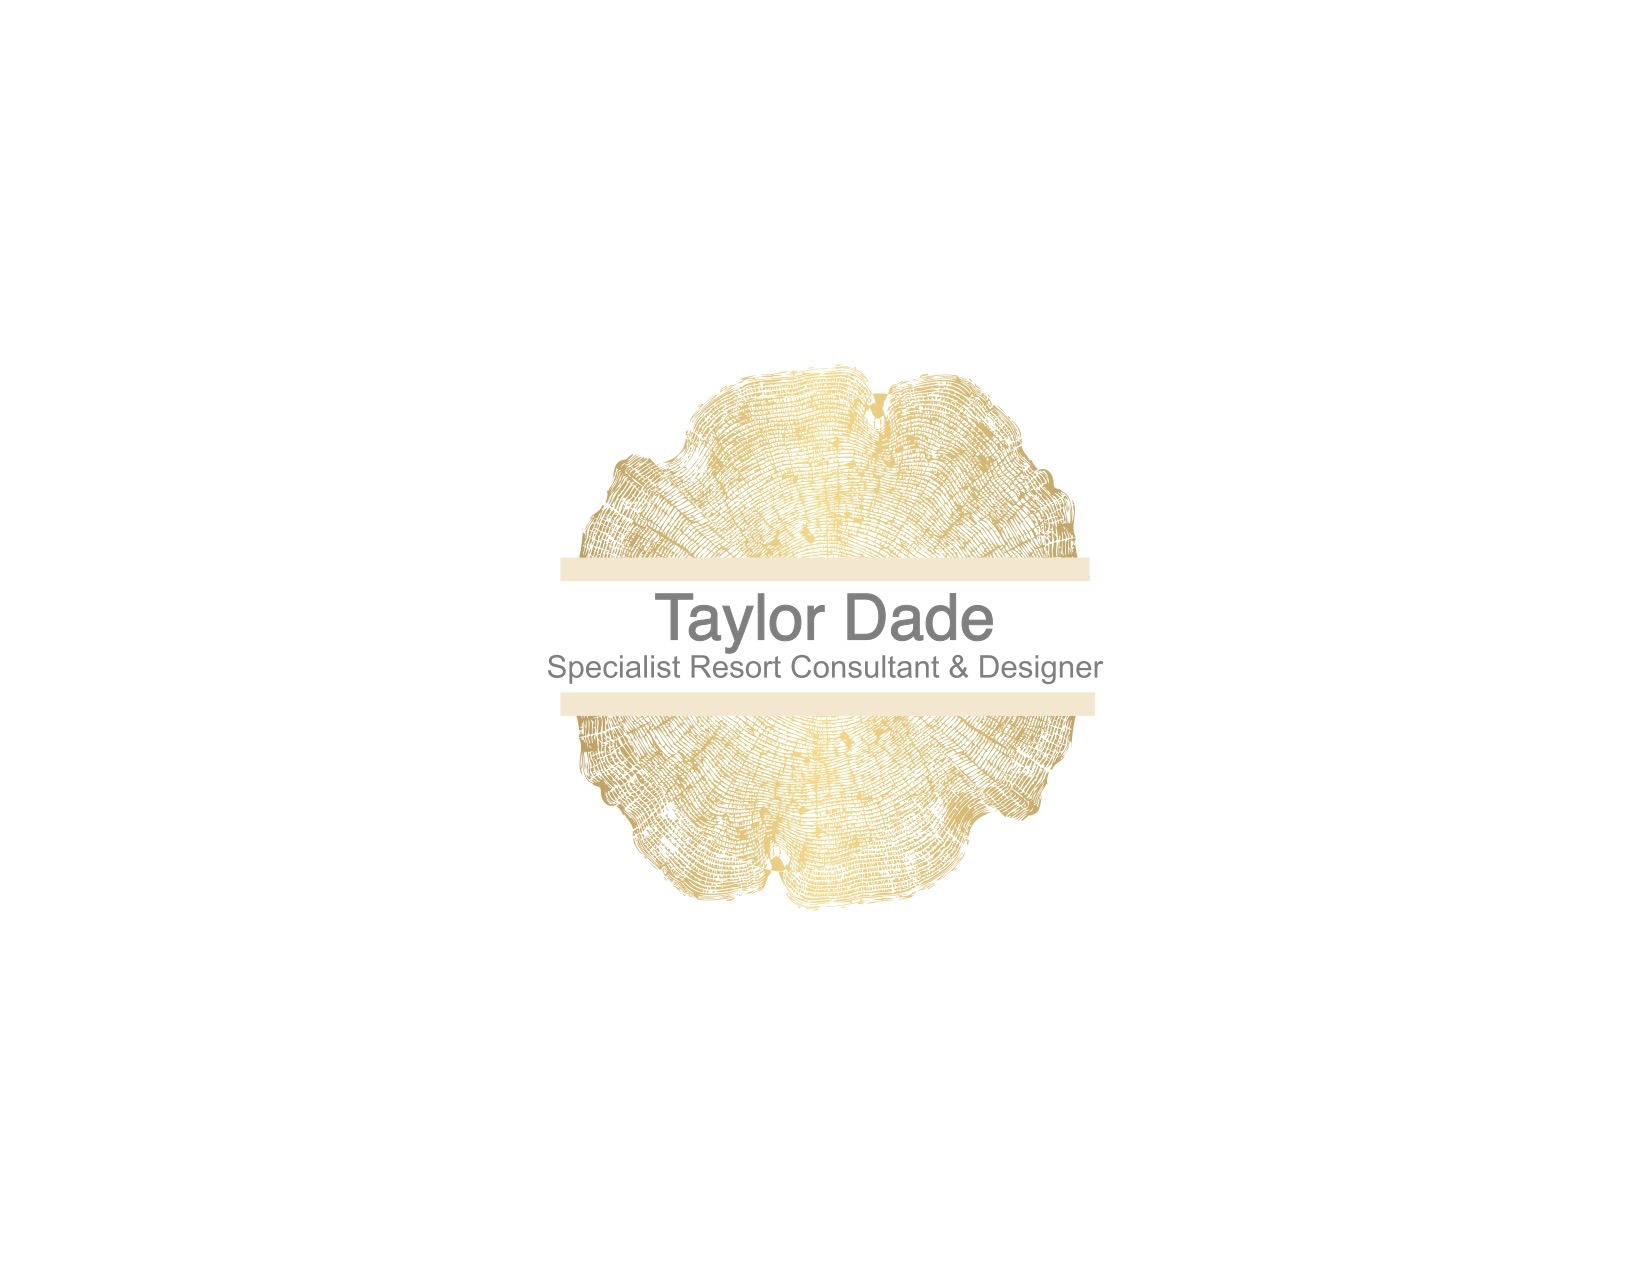 Taylor Dade Consulting